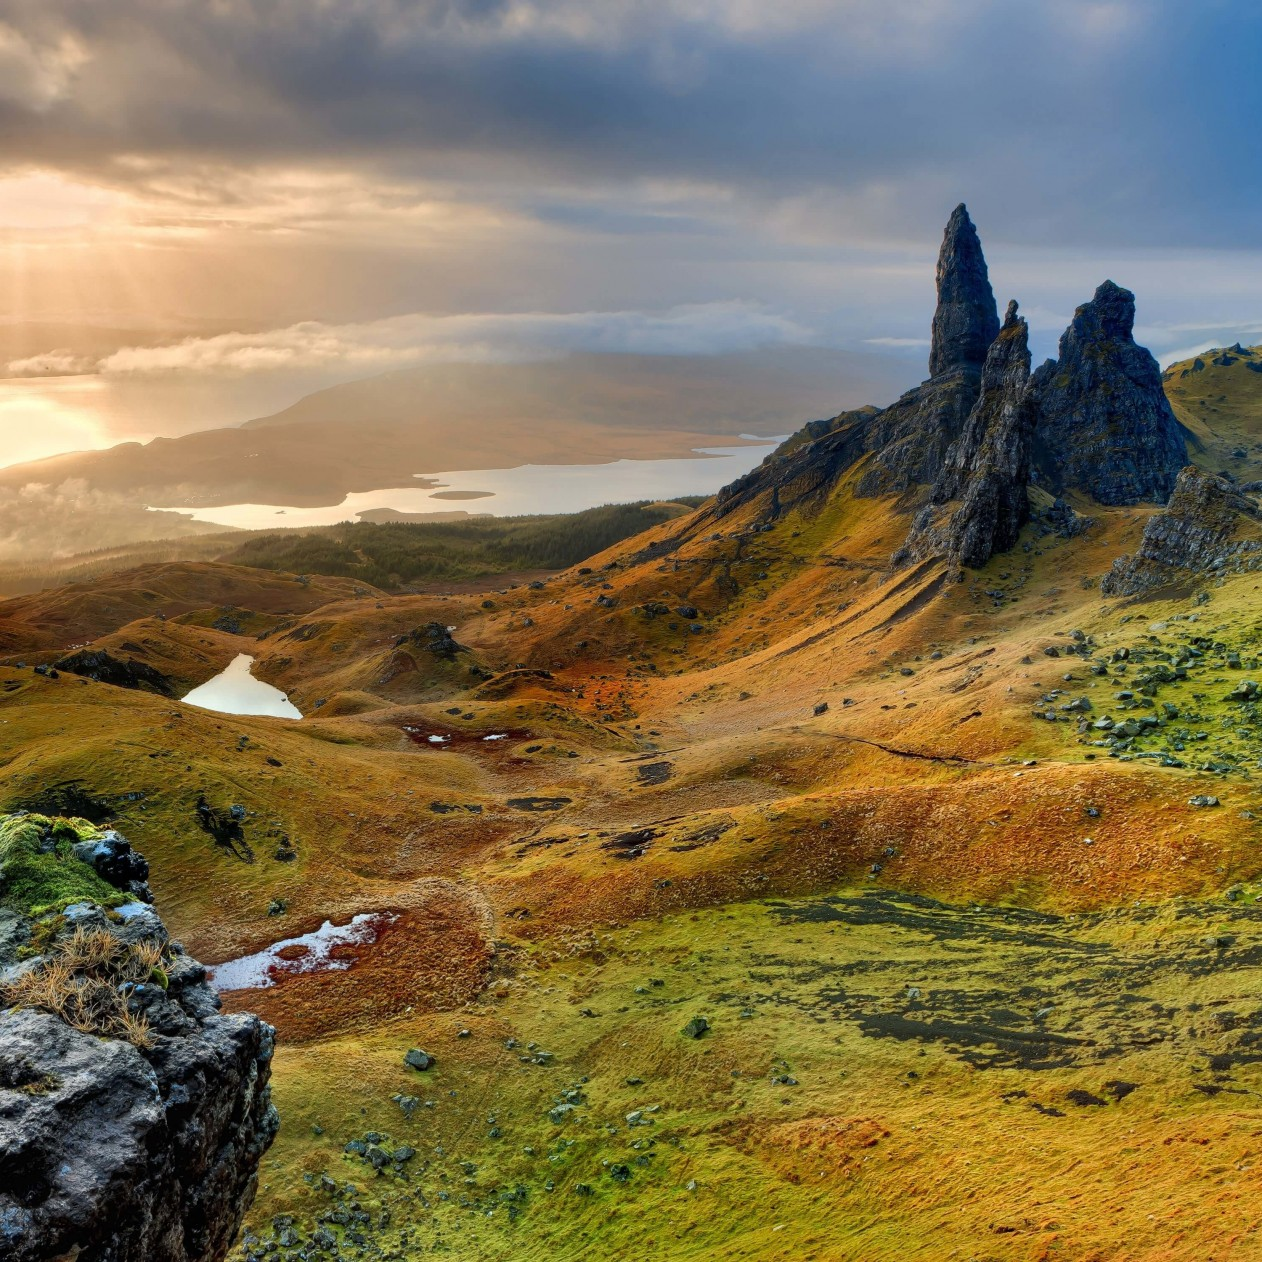 The Old Man of Storr, Isle of Skye, Scotland Wallpaper for Apple iPad mini